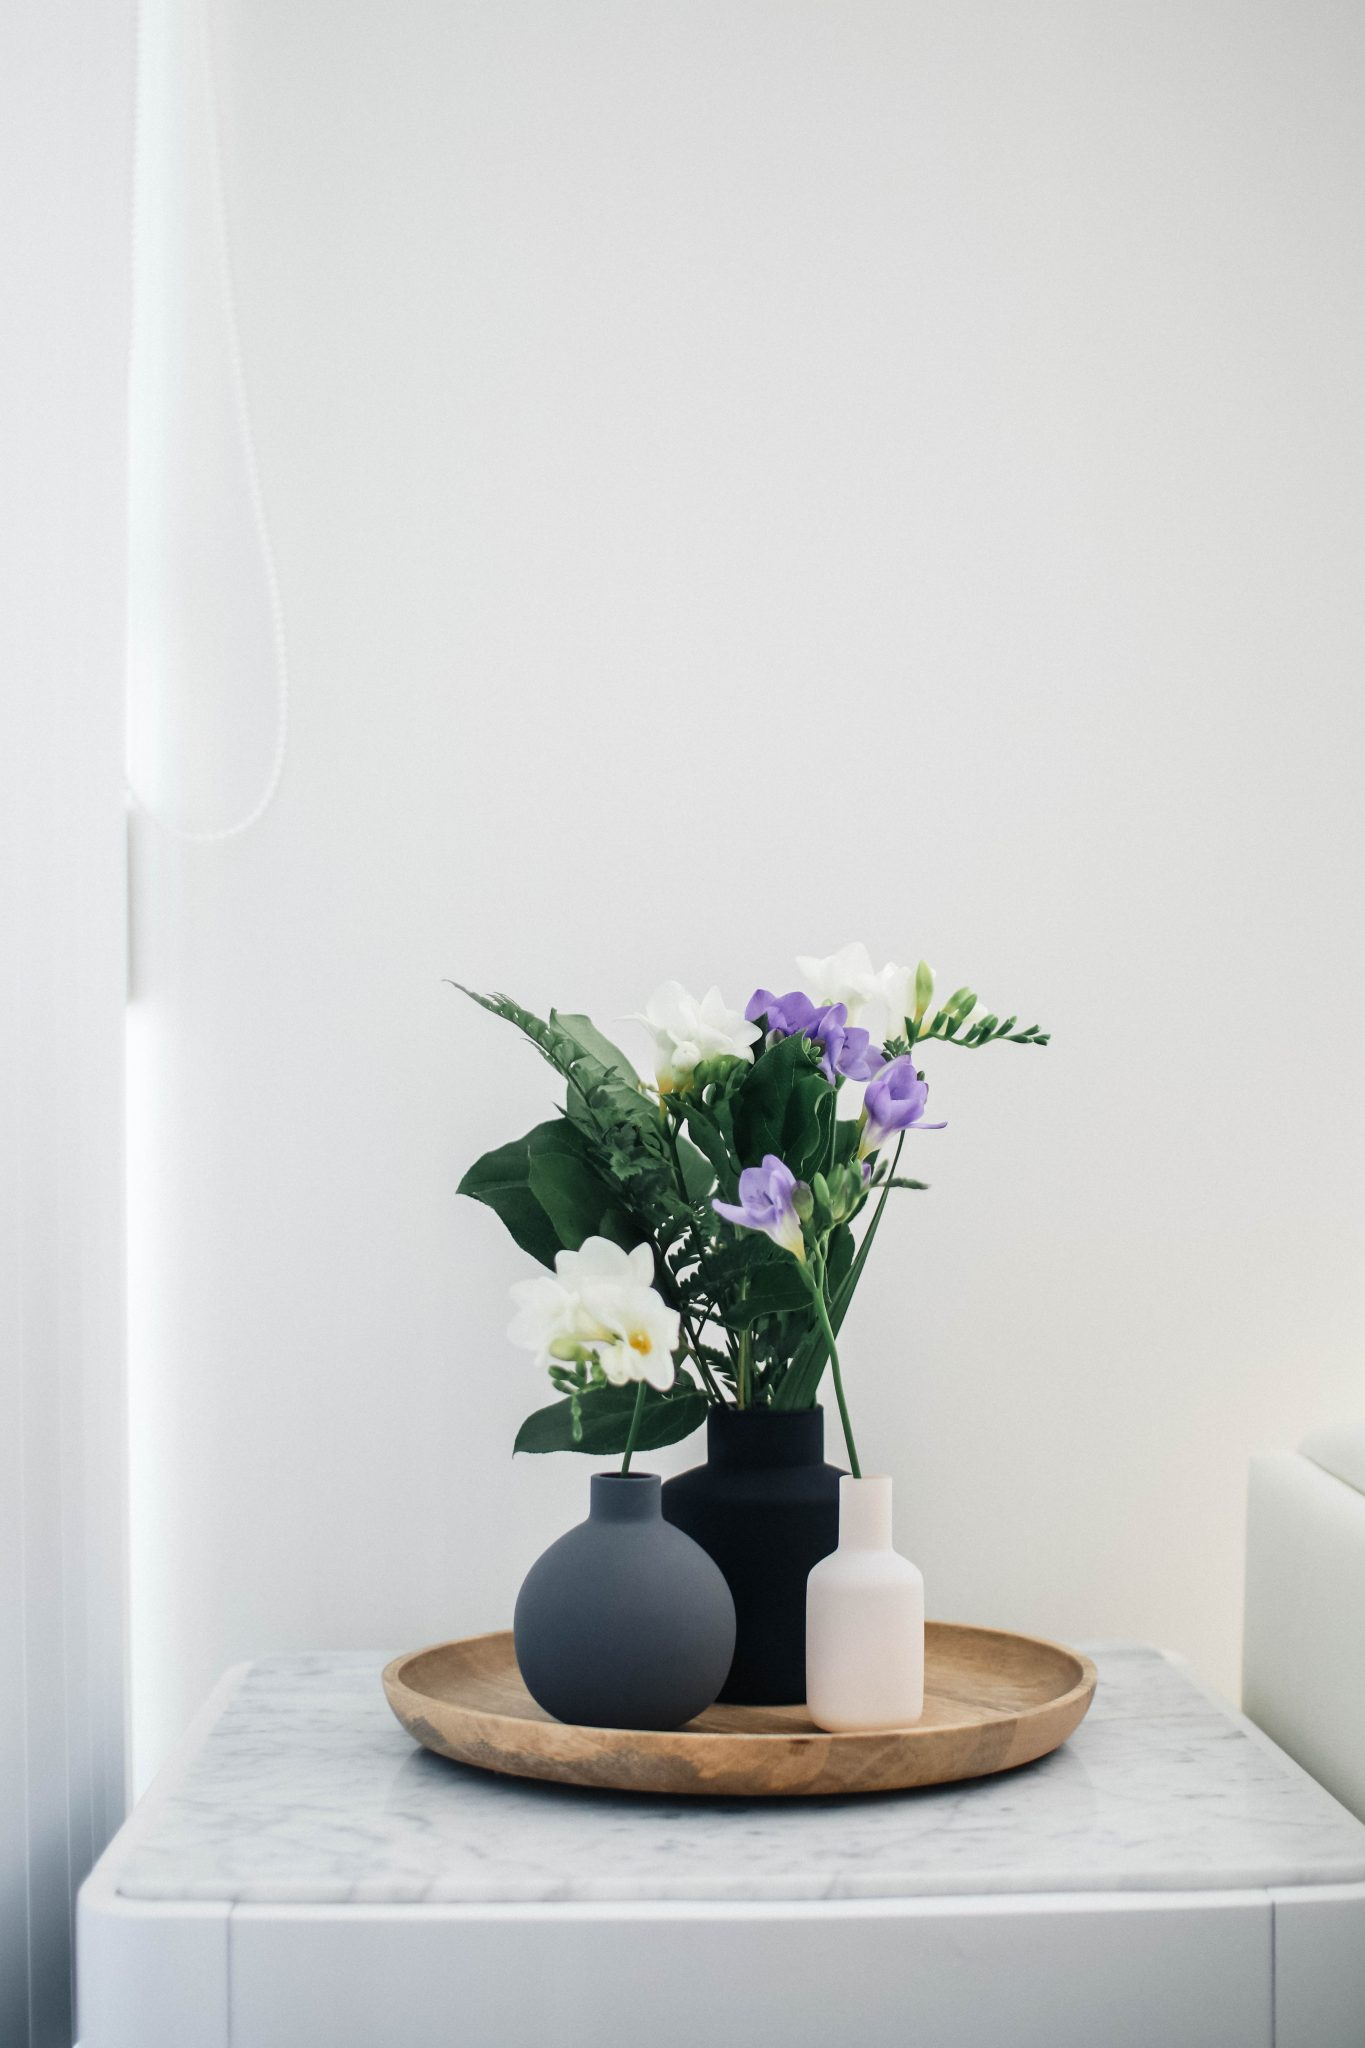 hm home vases